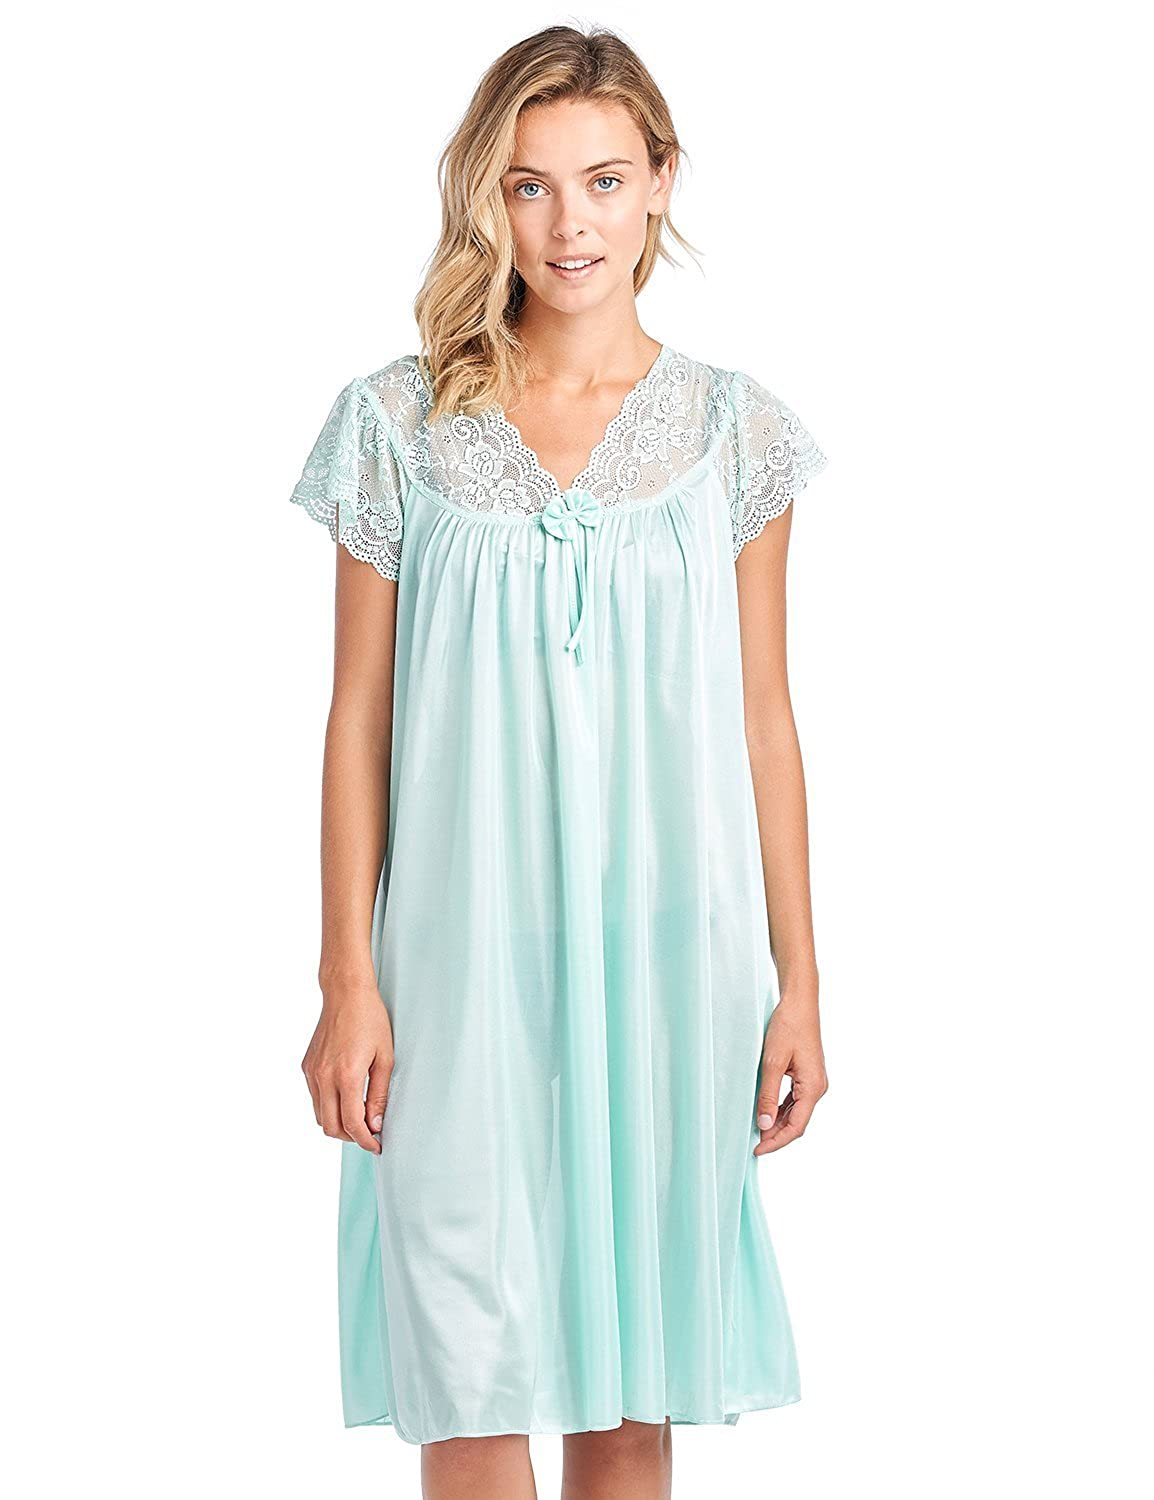 Casual Nights Women's Satin Scalloped Neck Short Sleeve Nightgown Short Sleeve Satin Nightshirt